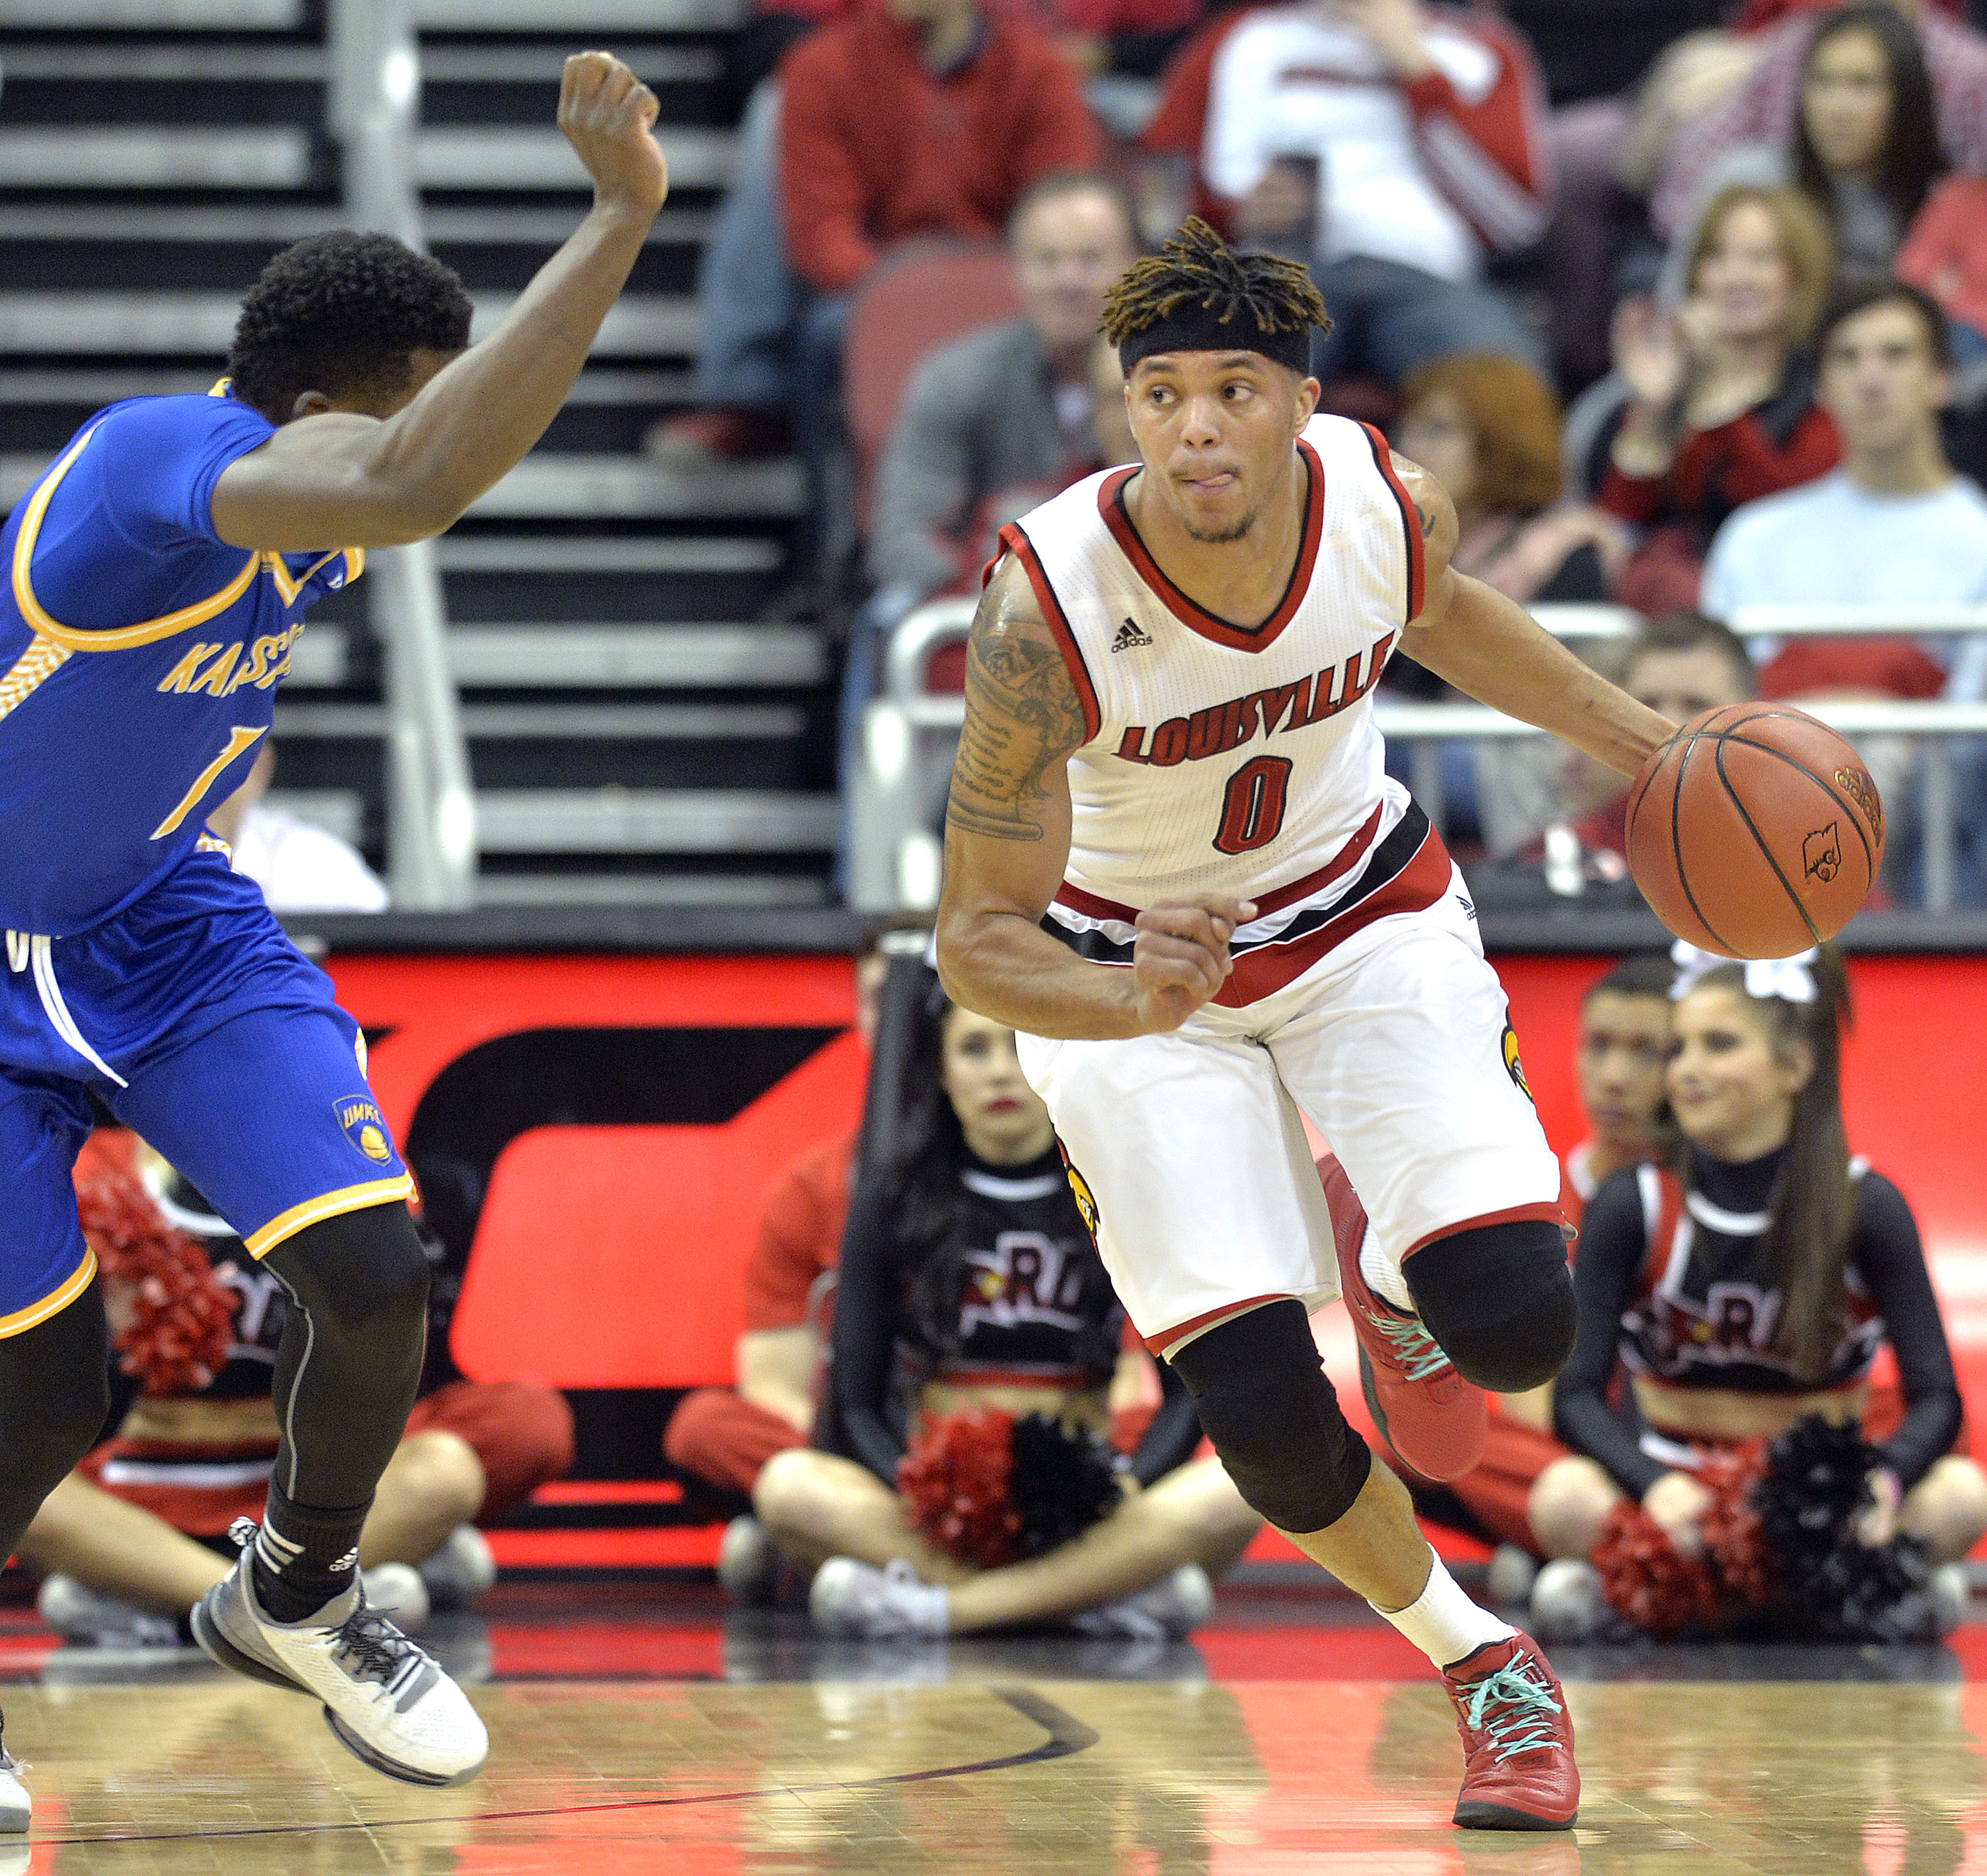 Louisville's Damion Lee (0) drives against UMKC's Dashawn King (1) during the first half of an NCAA college basketball game, Tuesday, Dec. 22, 2015, in Louisville, Ky. (AP Photo/Timothy D. Easley)